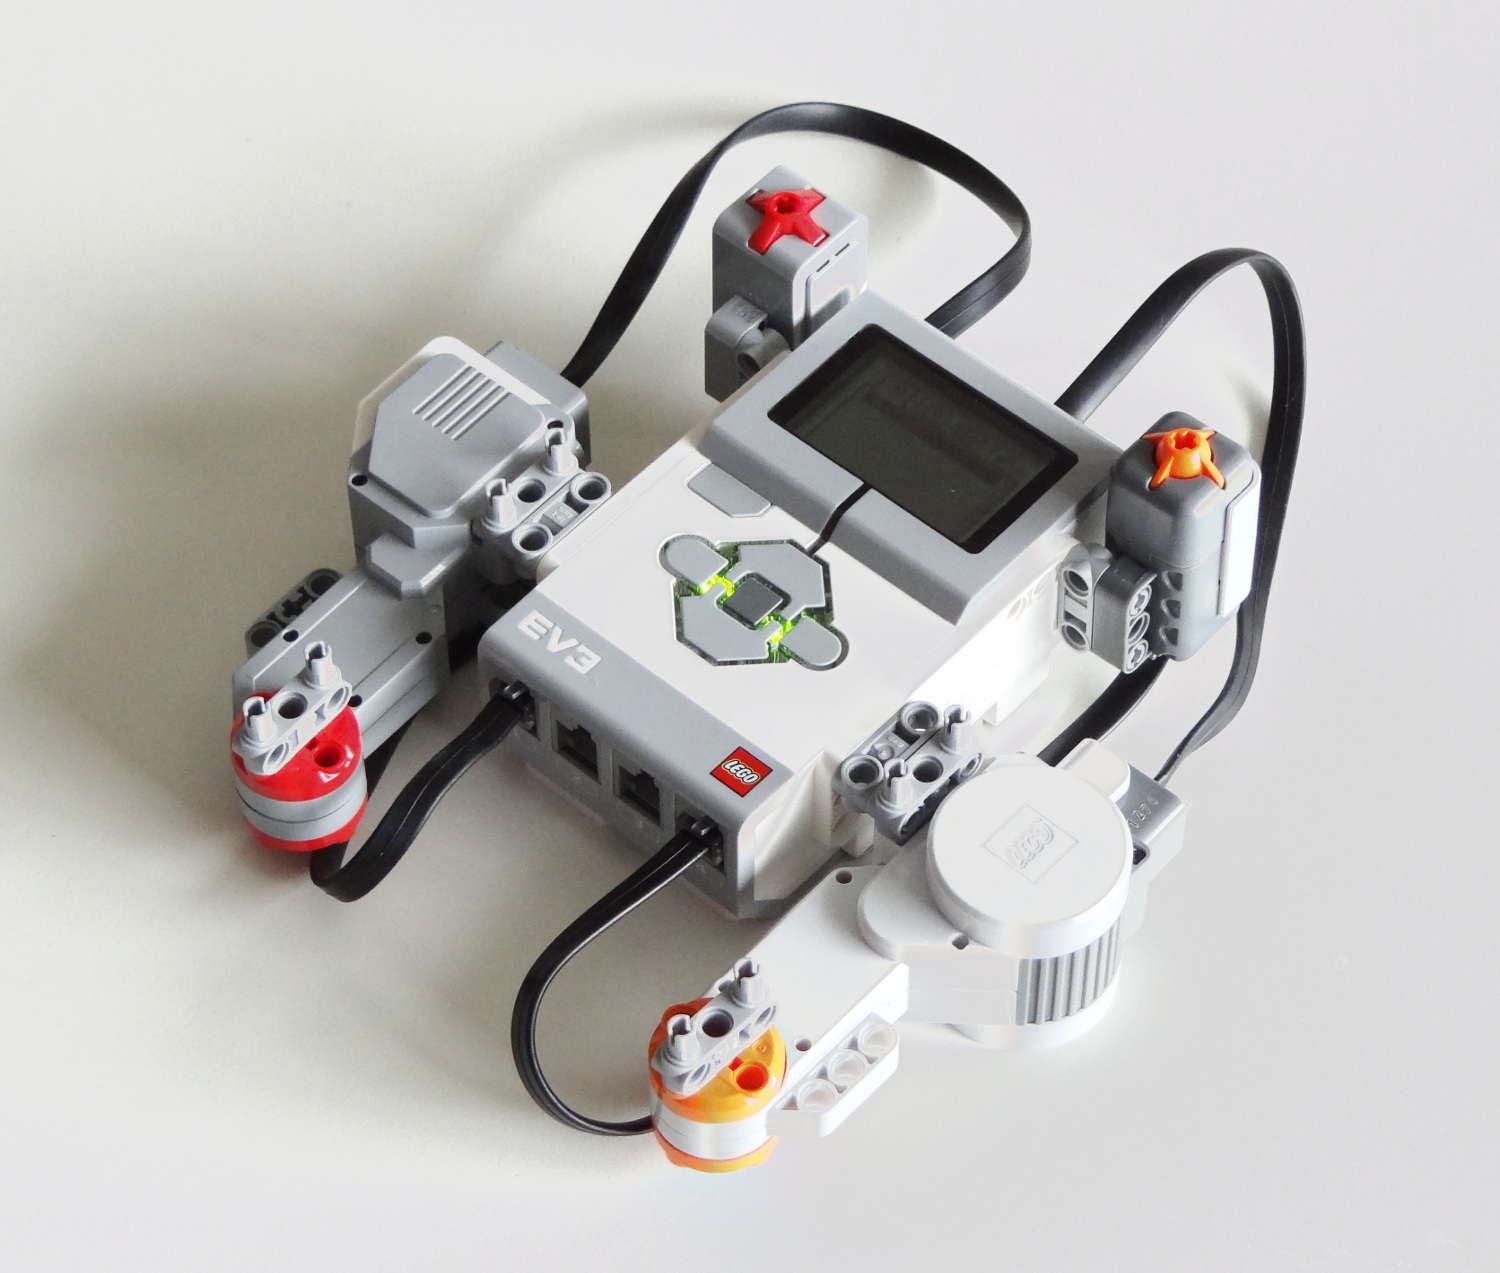 Ev3 And Nxt Difference Compatibility Robotsquare Simple Ways To Circuit Bend A Toy Bending Pinterest